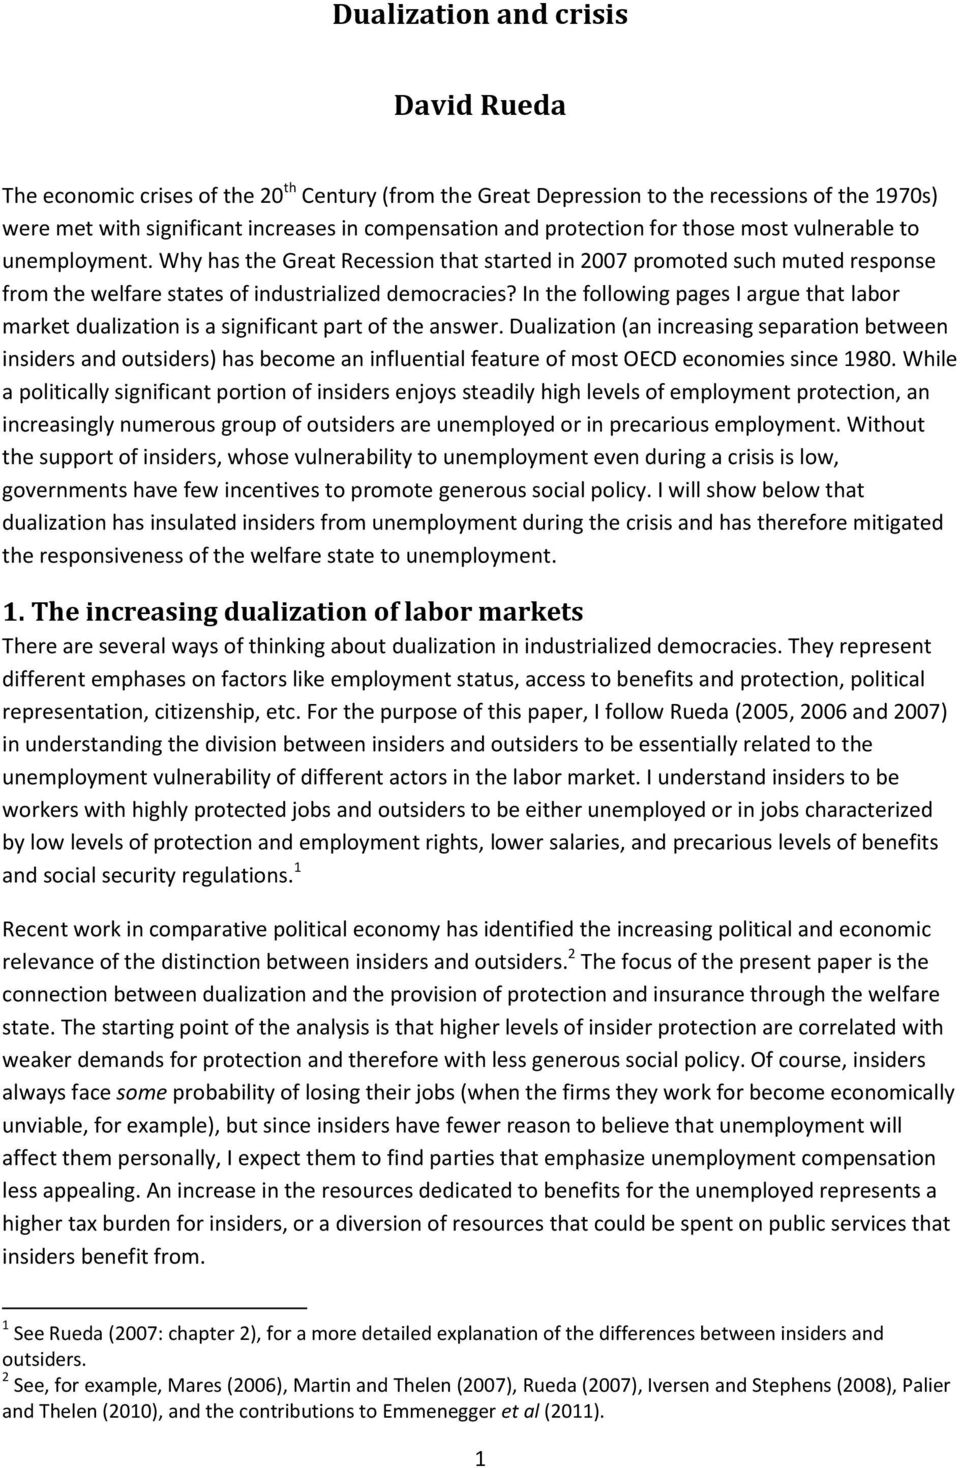 In the following pages I argue that labor market dualization is a significant part of the answer.